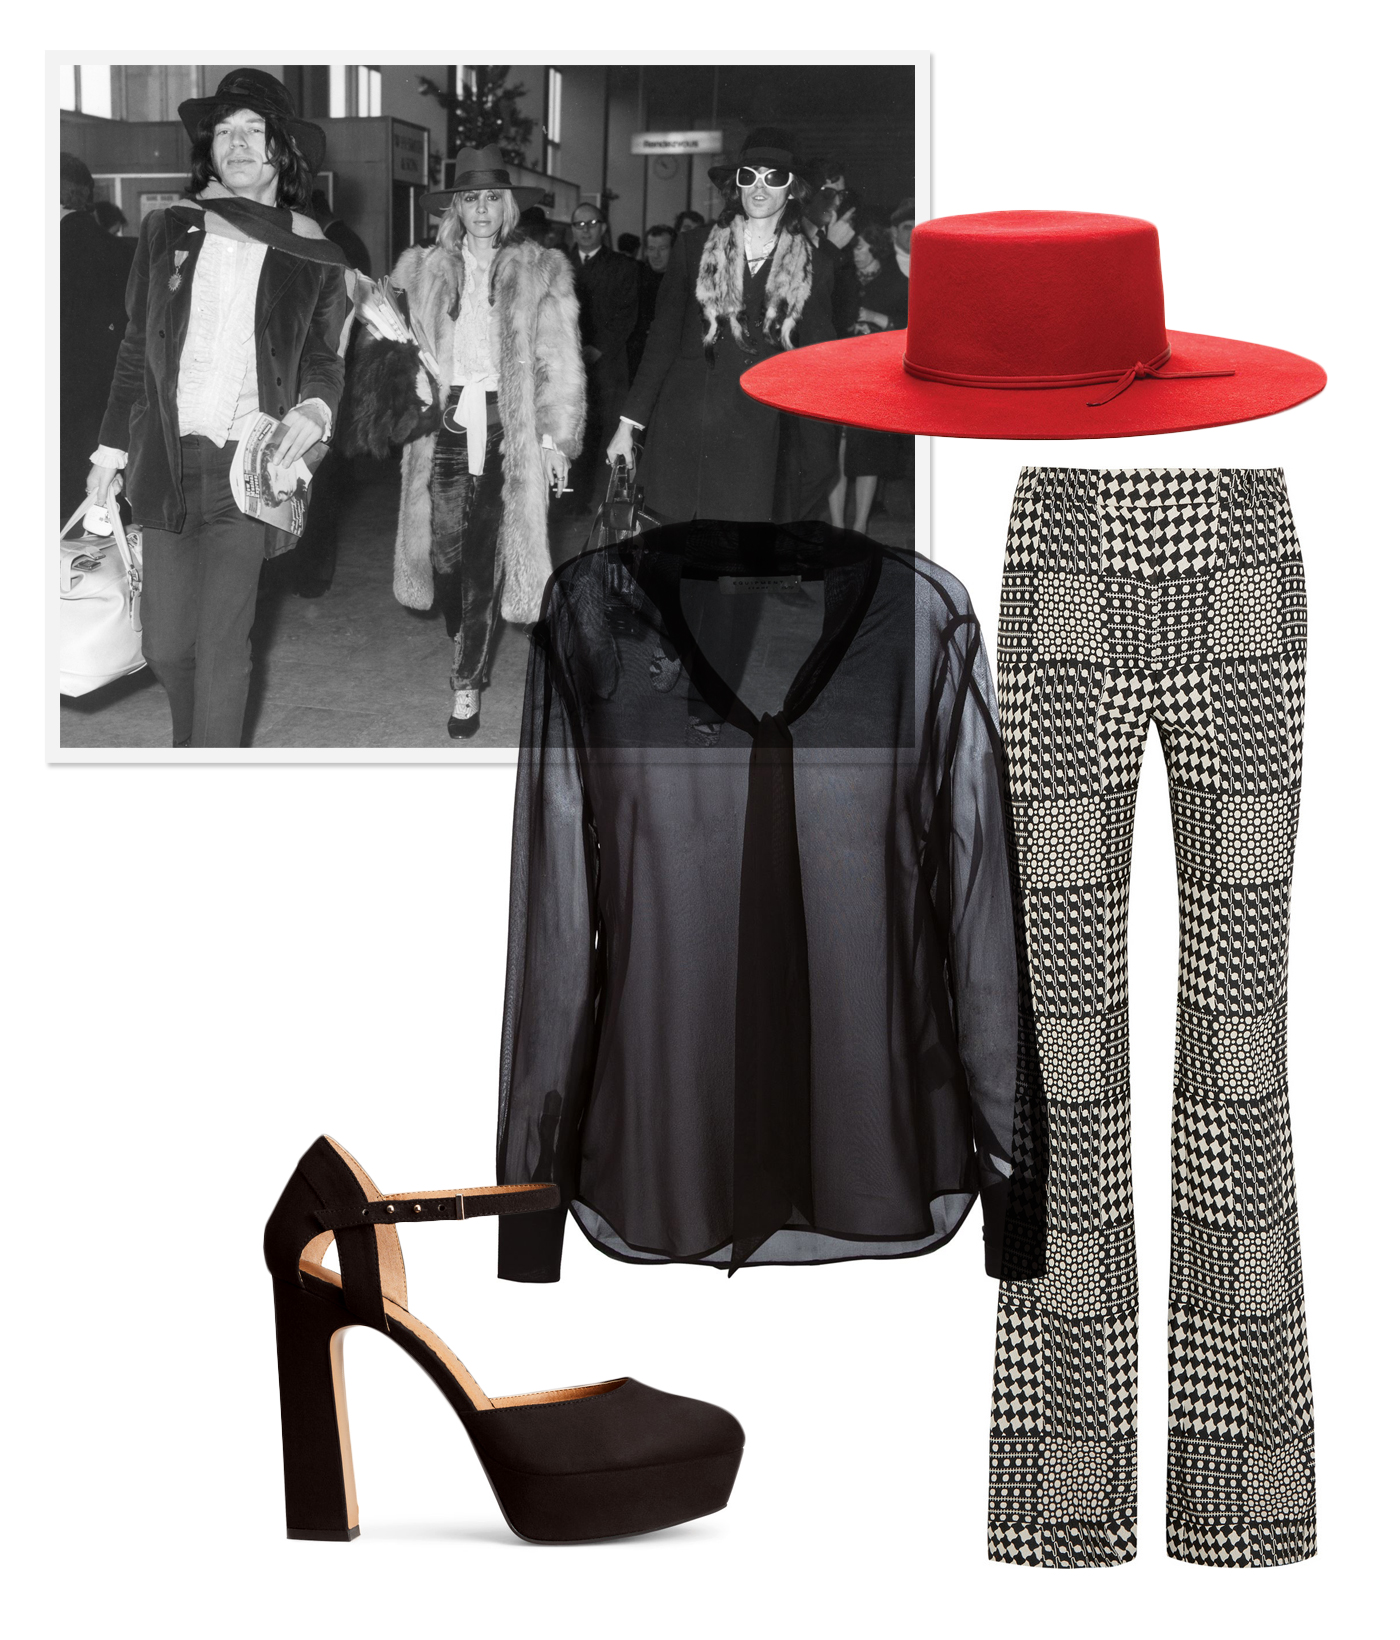 party-outfit-ideas-02.jpg